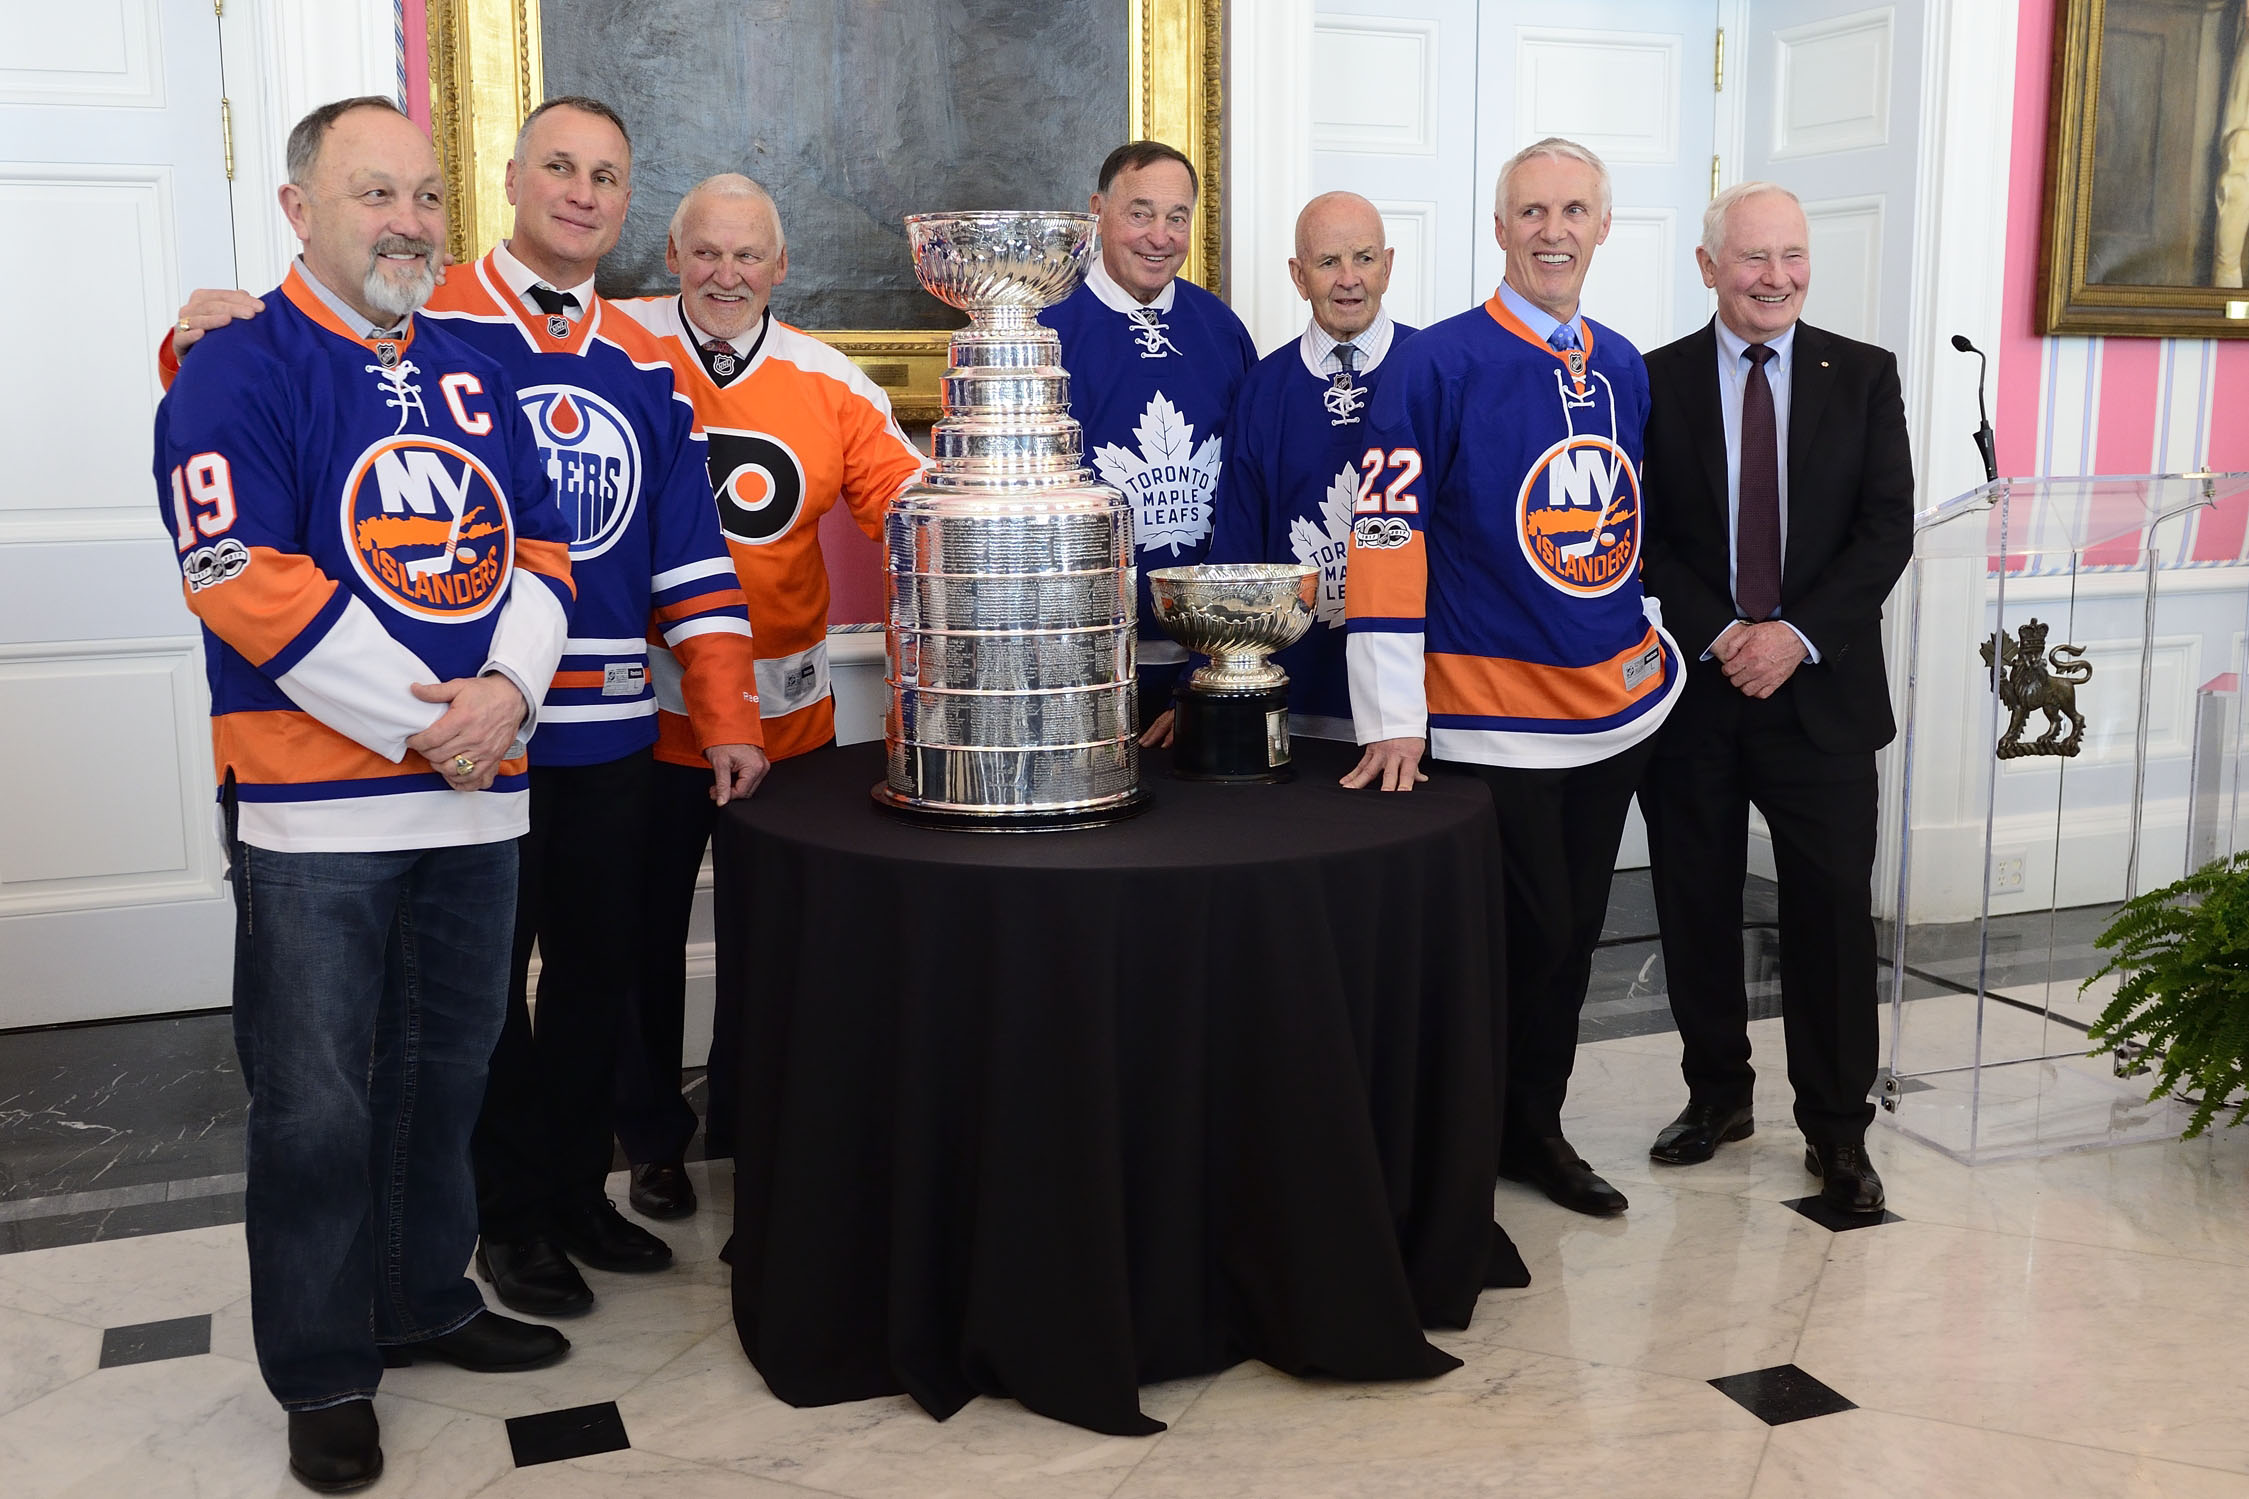 Stanley Cup champions (from left to right) Bryan Trottier, Paul Coffey, Bernie Parent, Frank Mahovlich, Dave Keon and Mike Bossy were in attendance.